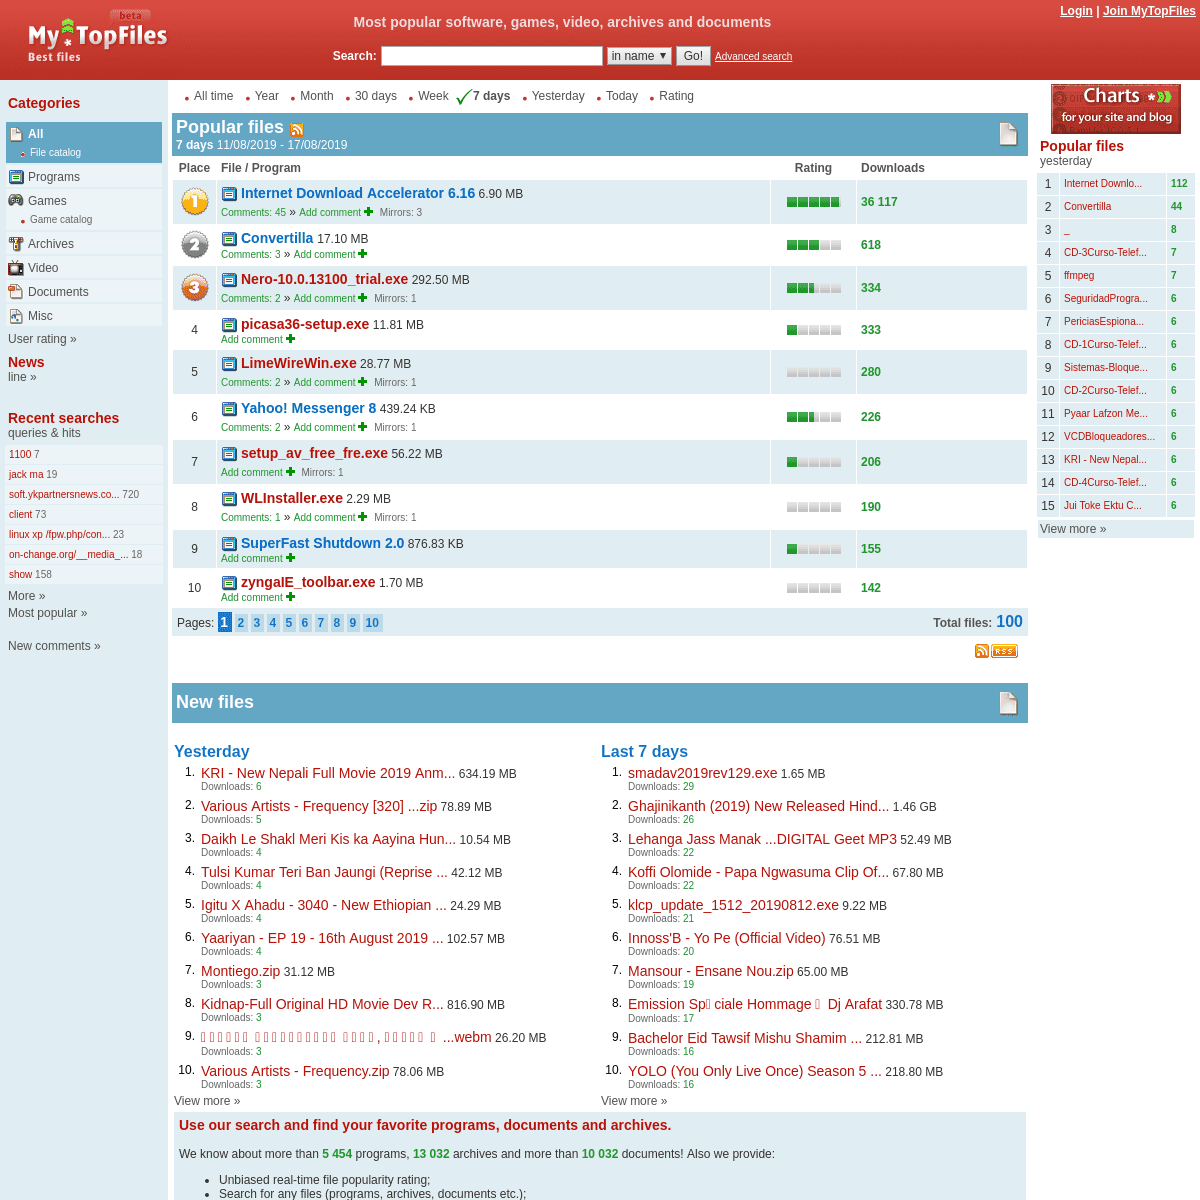 ArchiveBay.com - mytopfiles.com - MyTopFiles - Most popular software, games, video, archives and documents